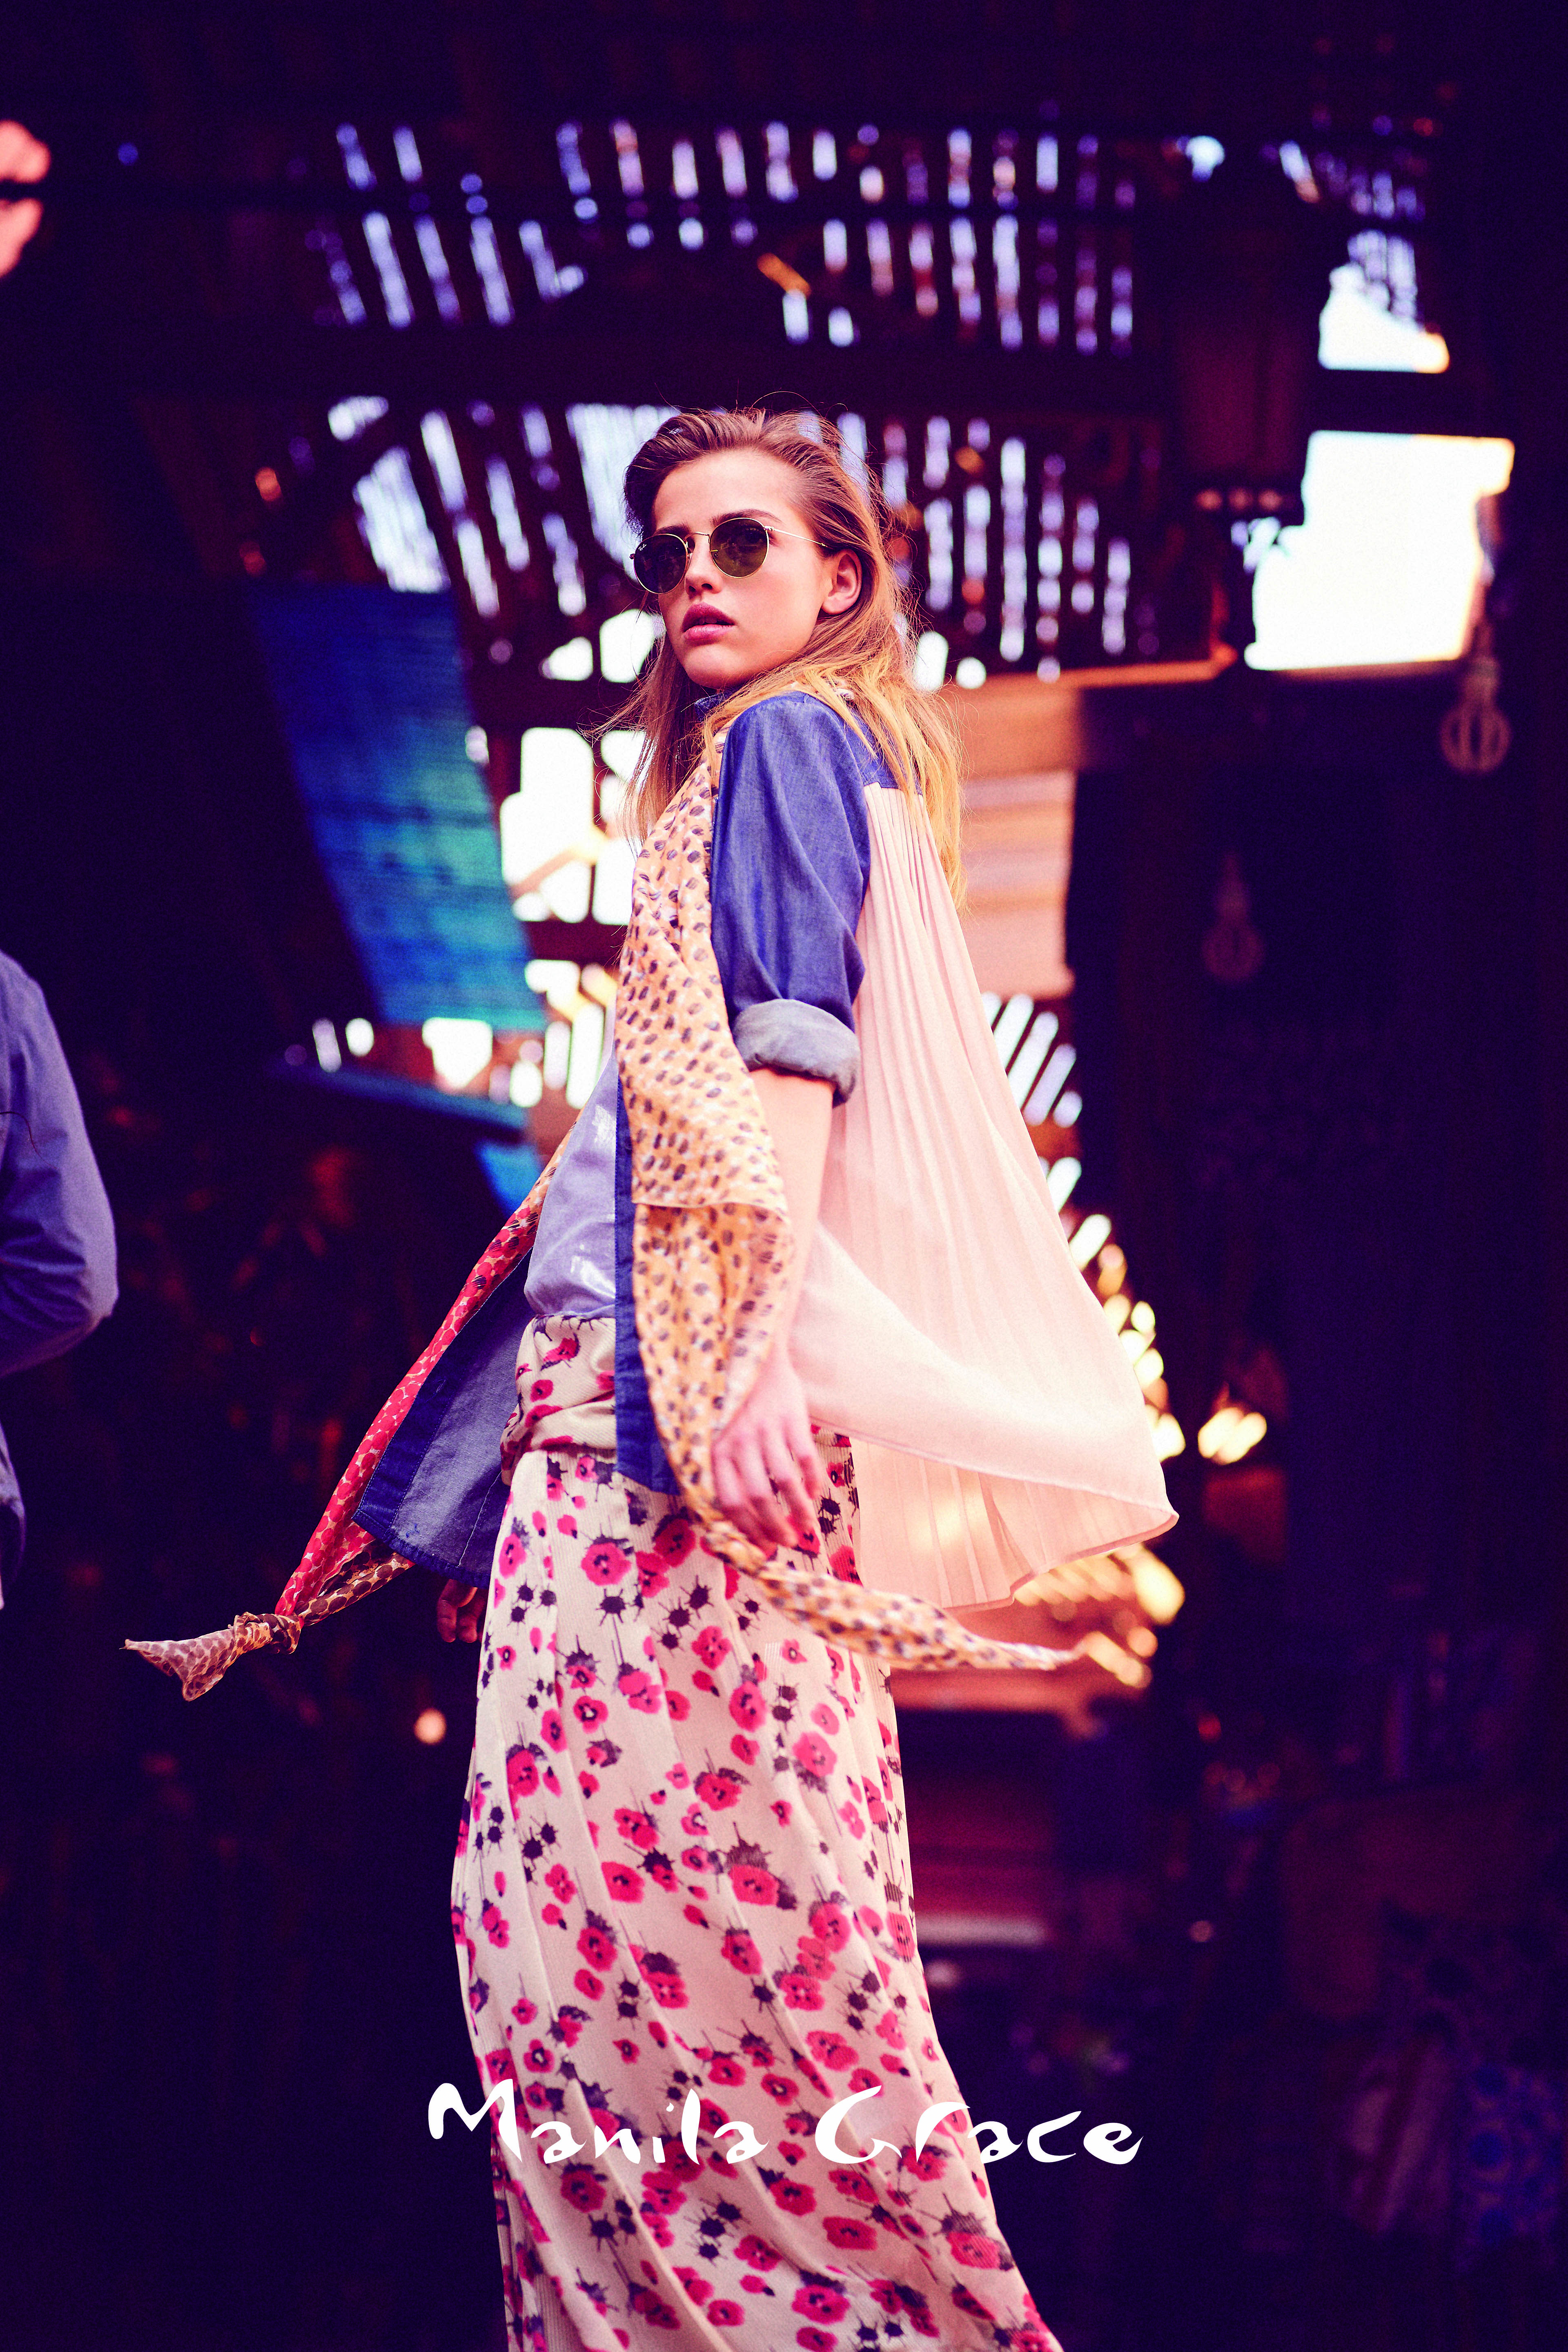 mercato del Souk Manila Grace video Spring Summer 2015